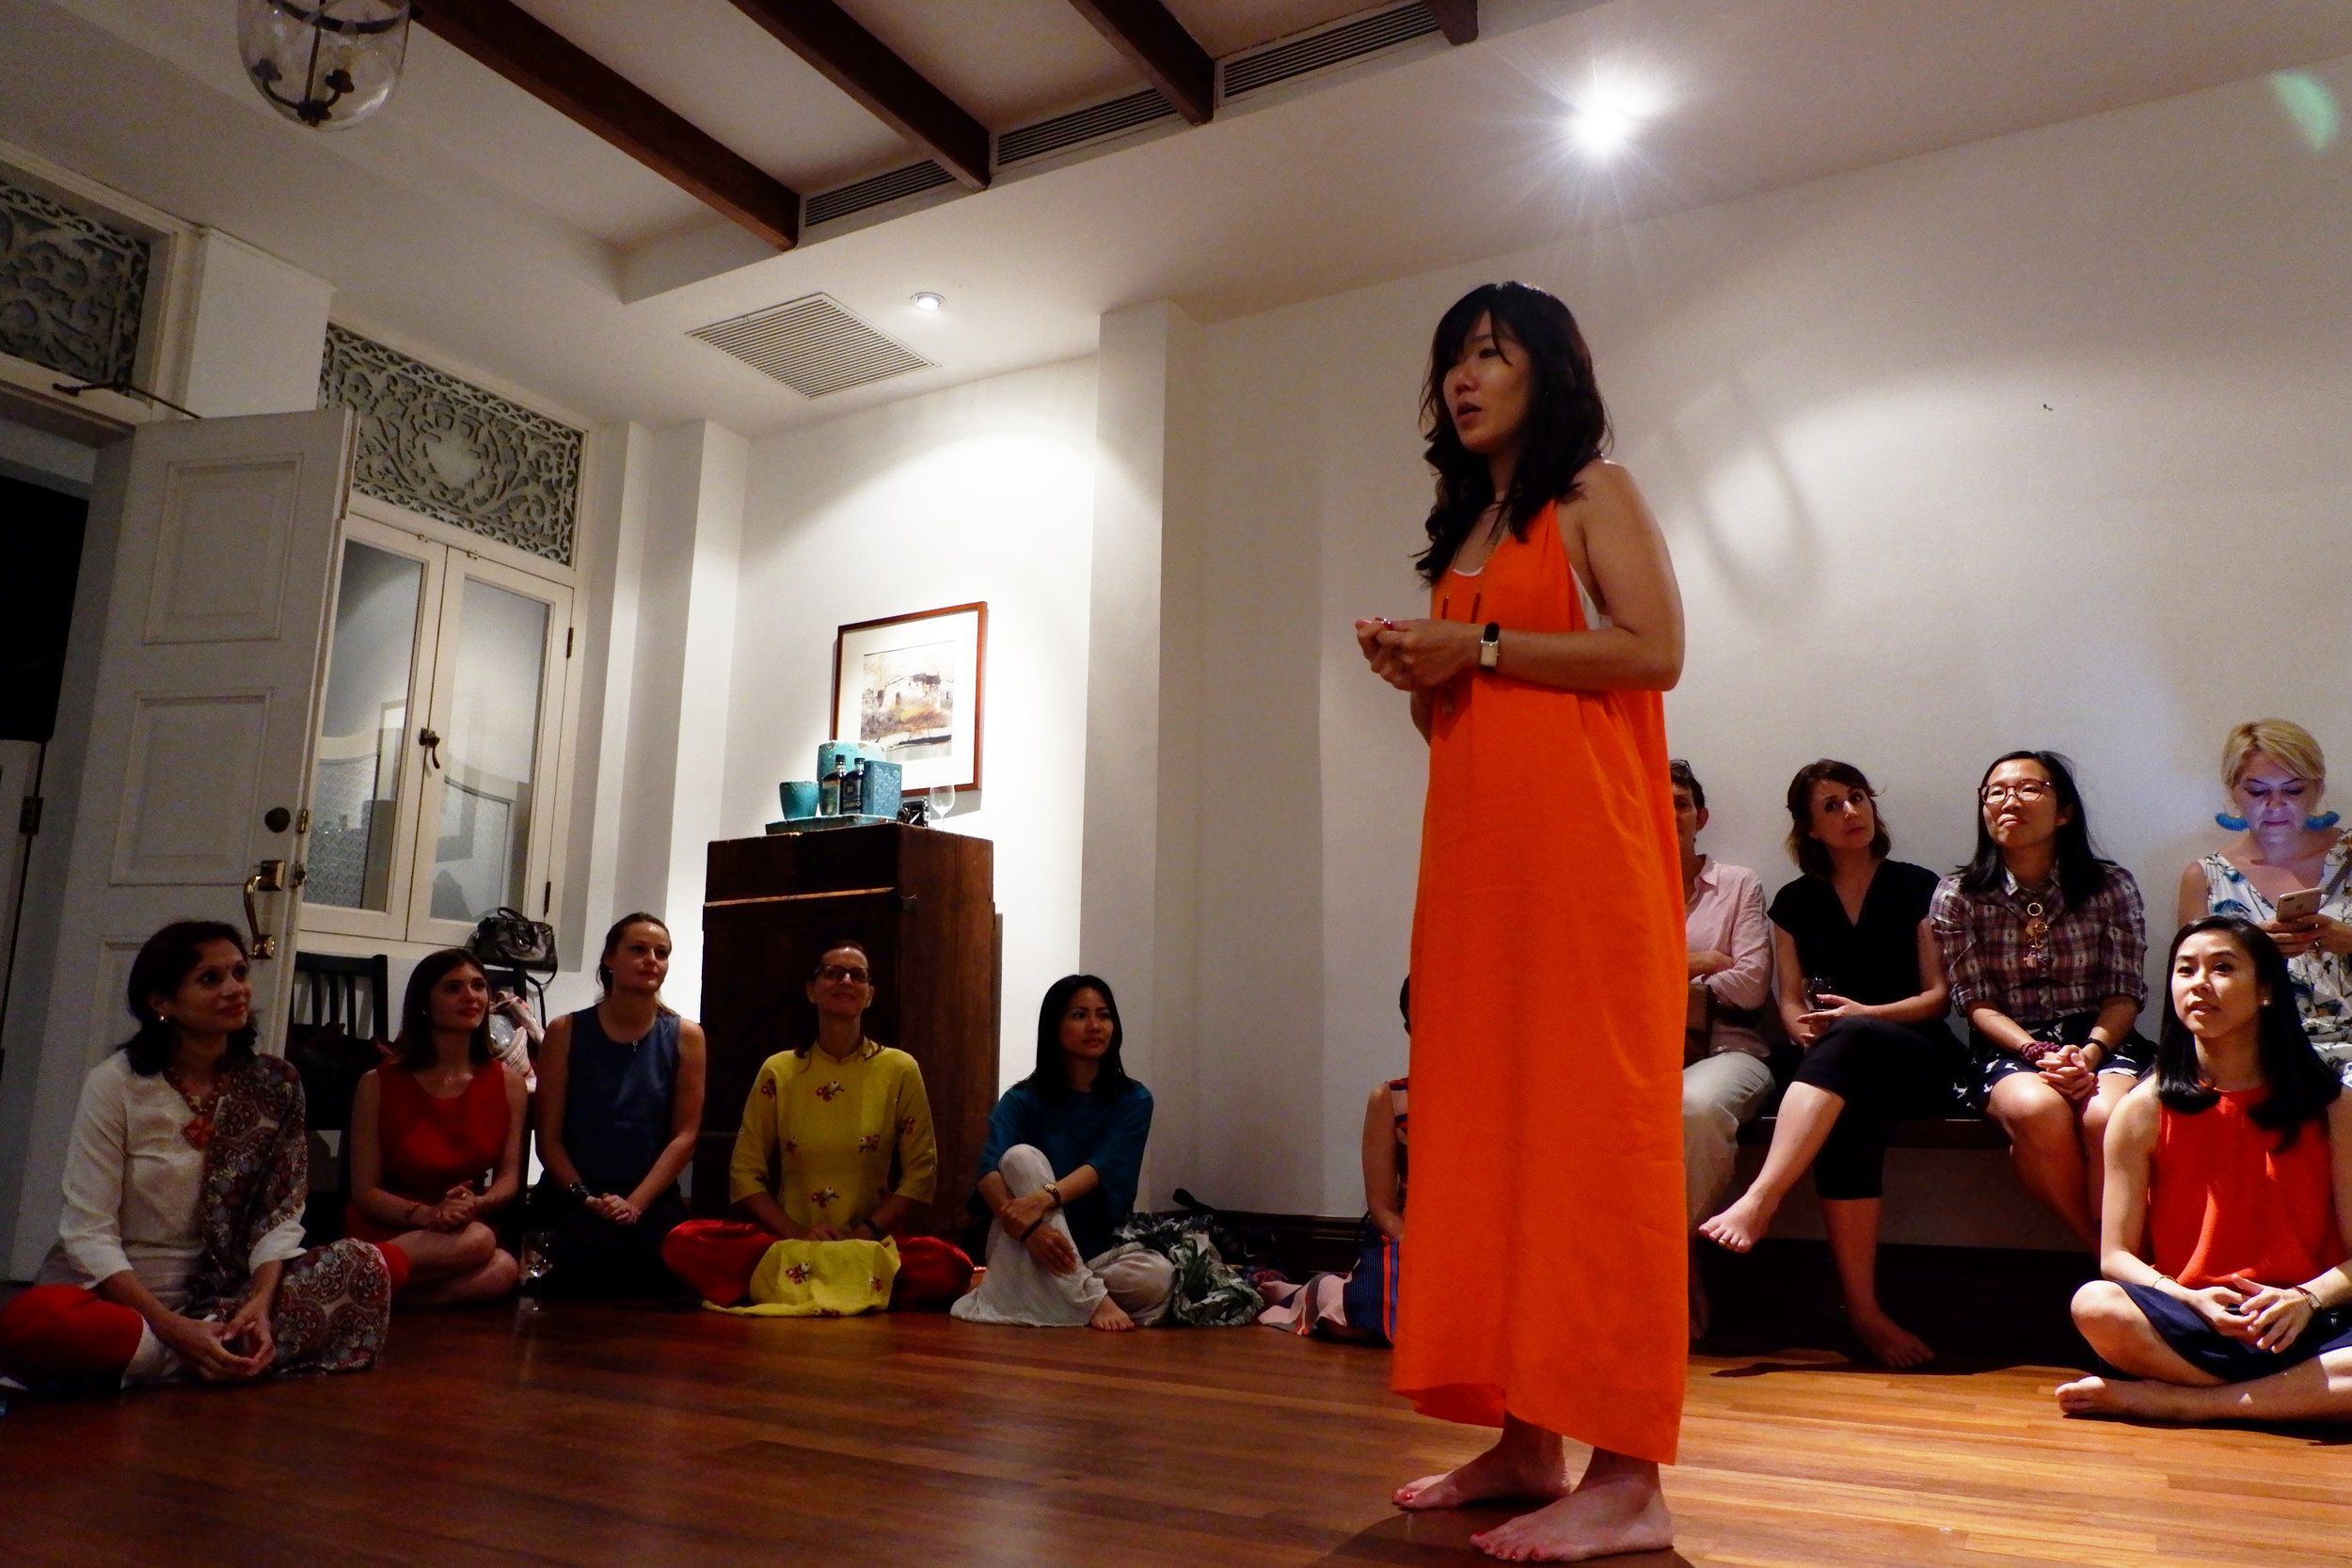 The soulful singing bowl session by Jolie Ow, Canvass   Yoga and Art Studio creator.